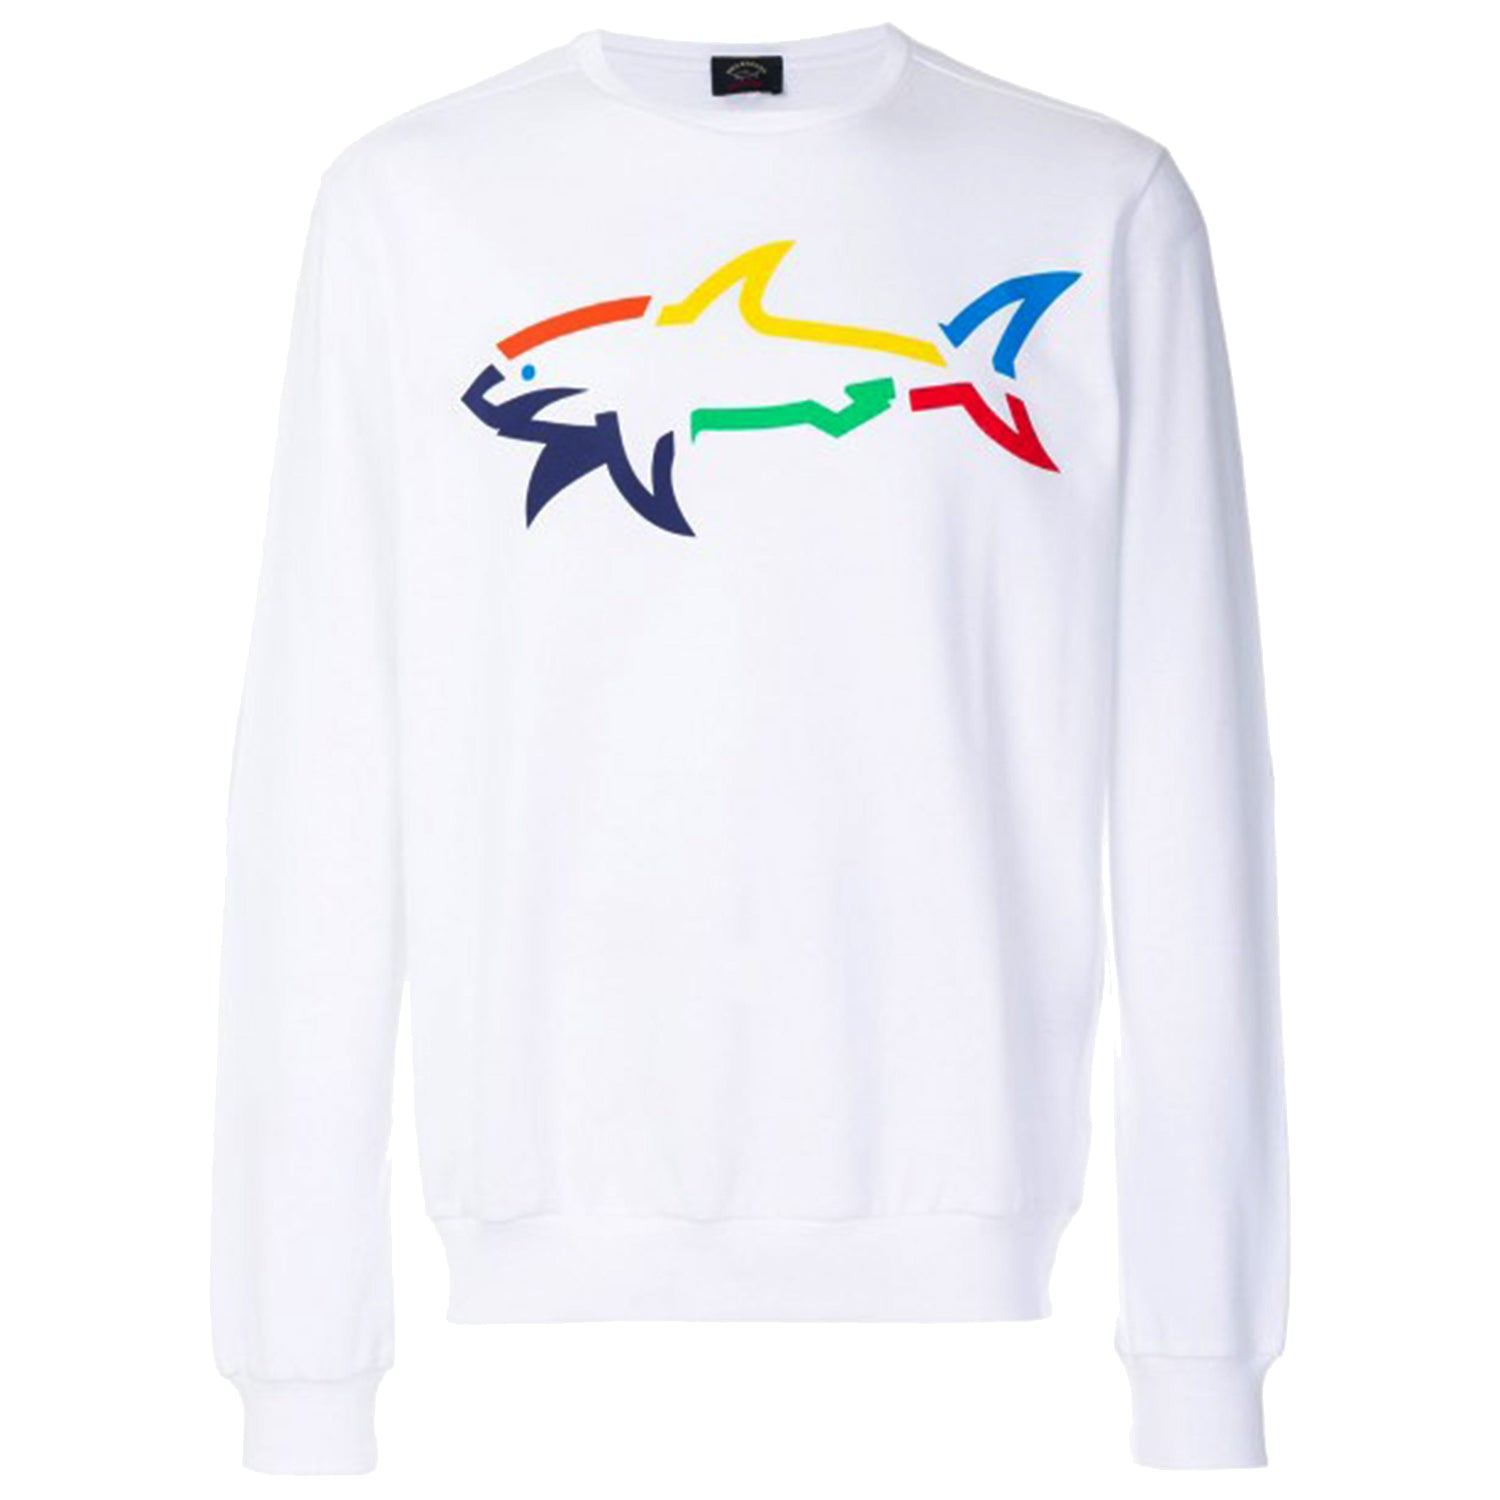 Paul & Shark Rainbow Shark Print Sweatshirt